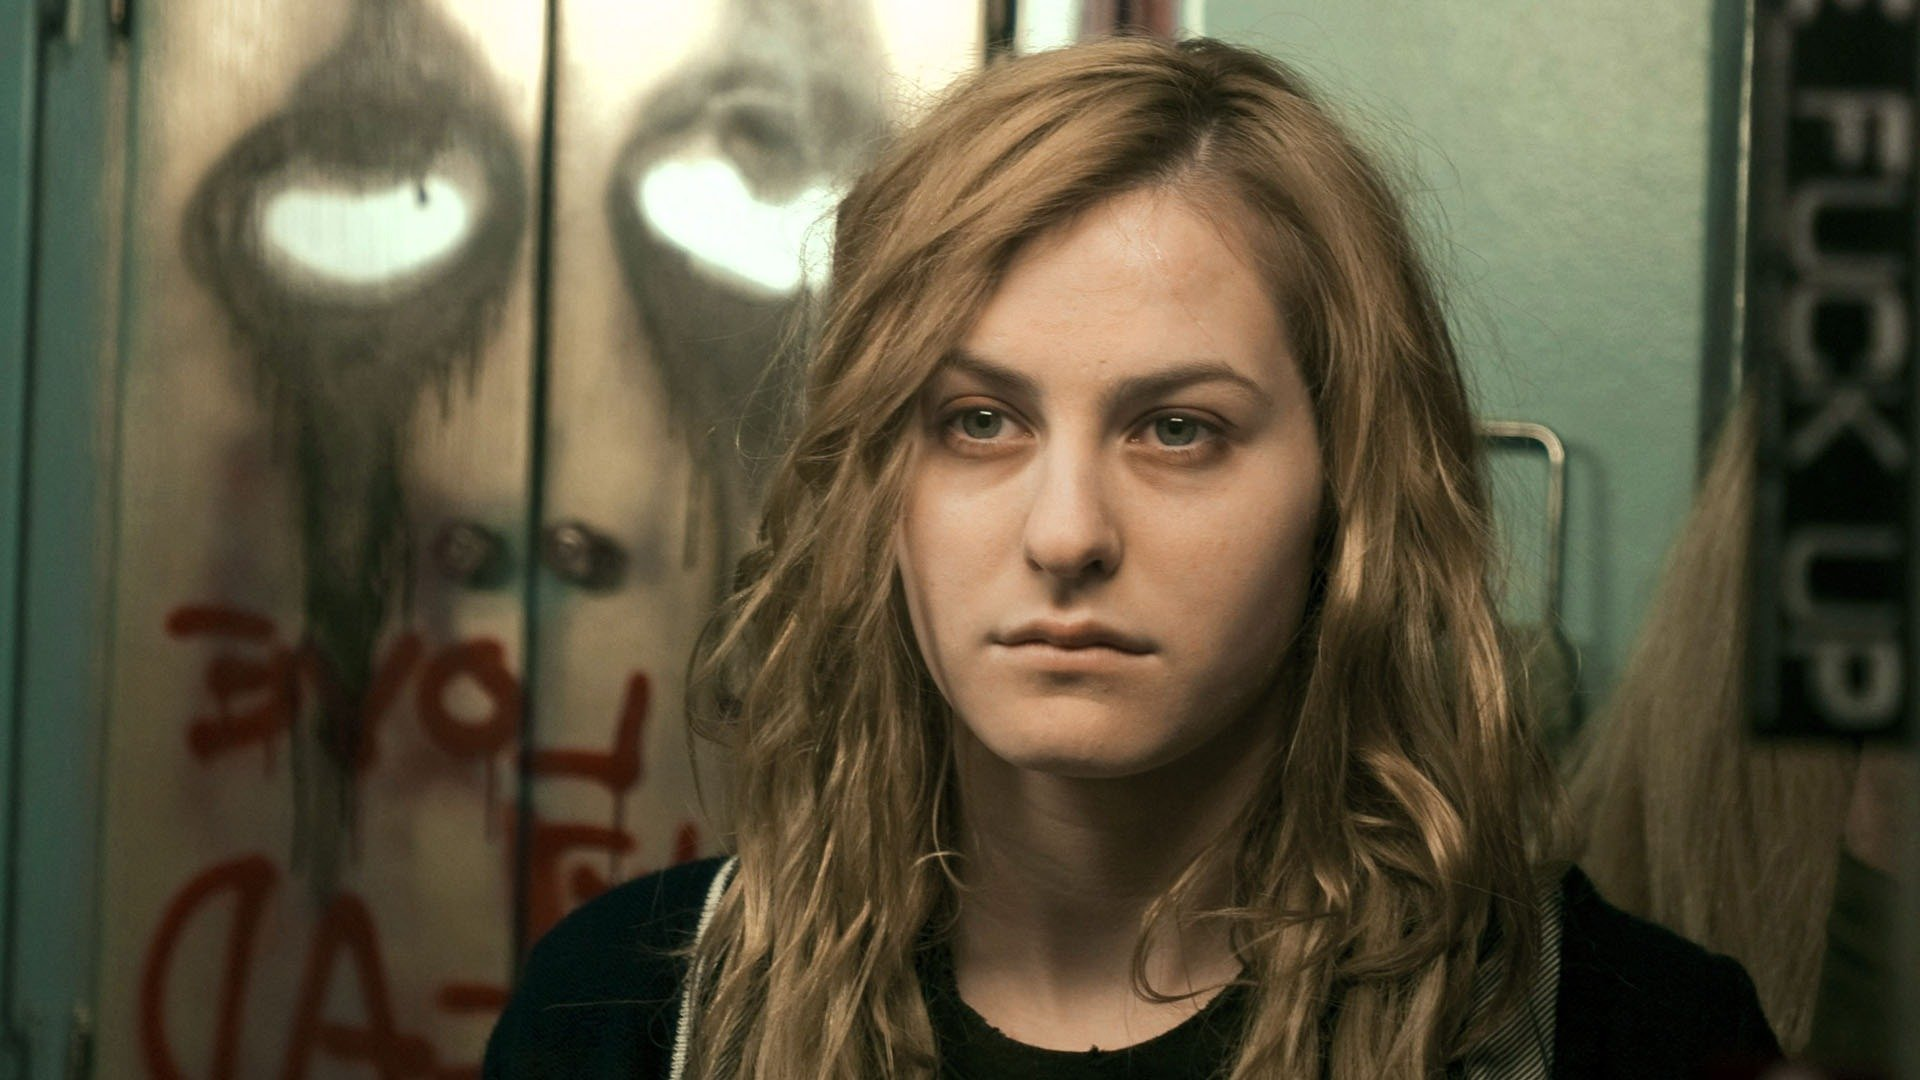 Scout Taylor-Compton and More Join the Getaway Girls - Dread Central